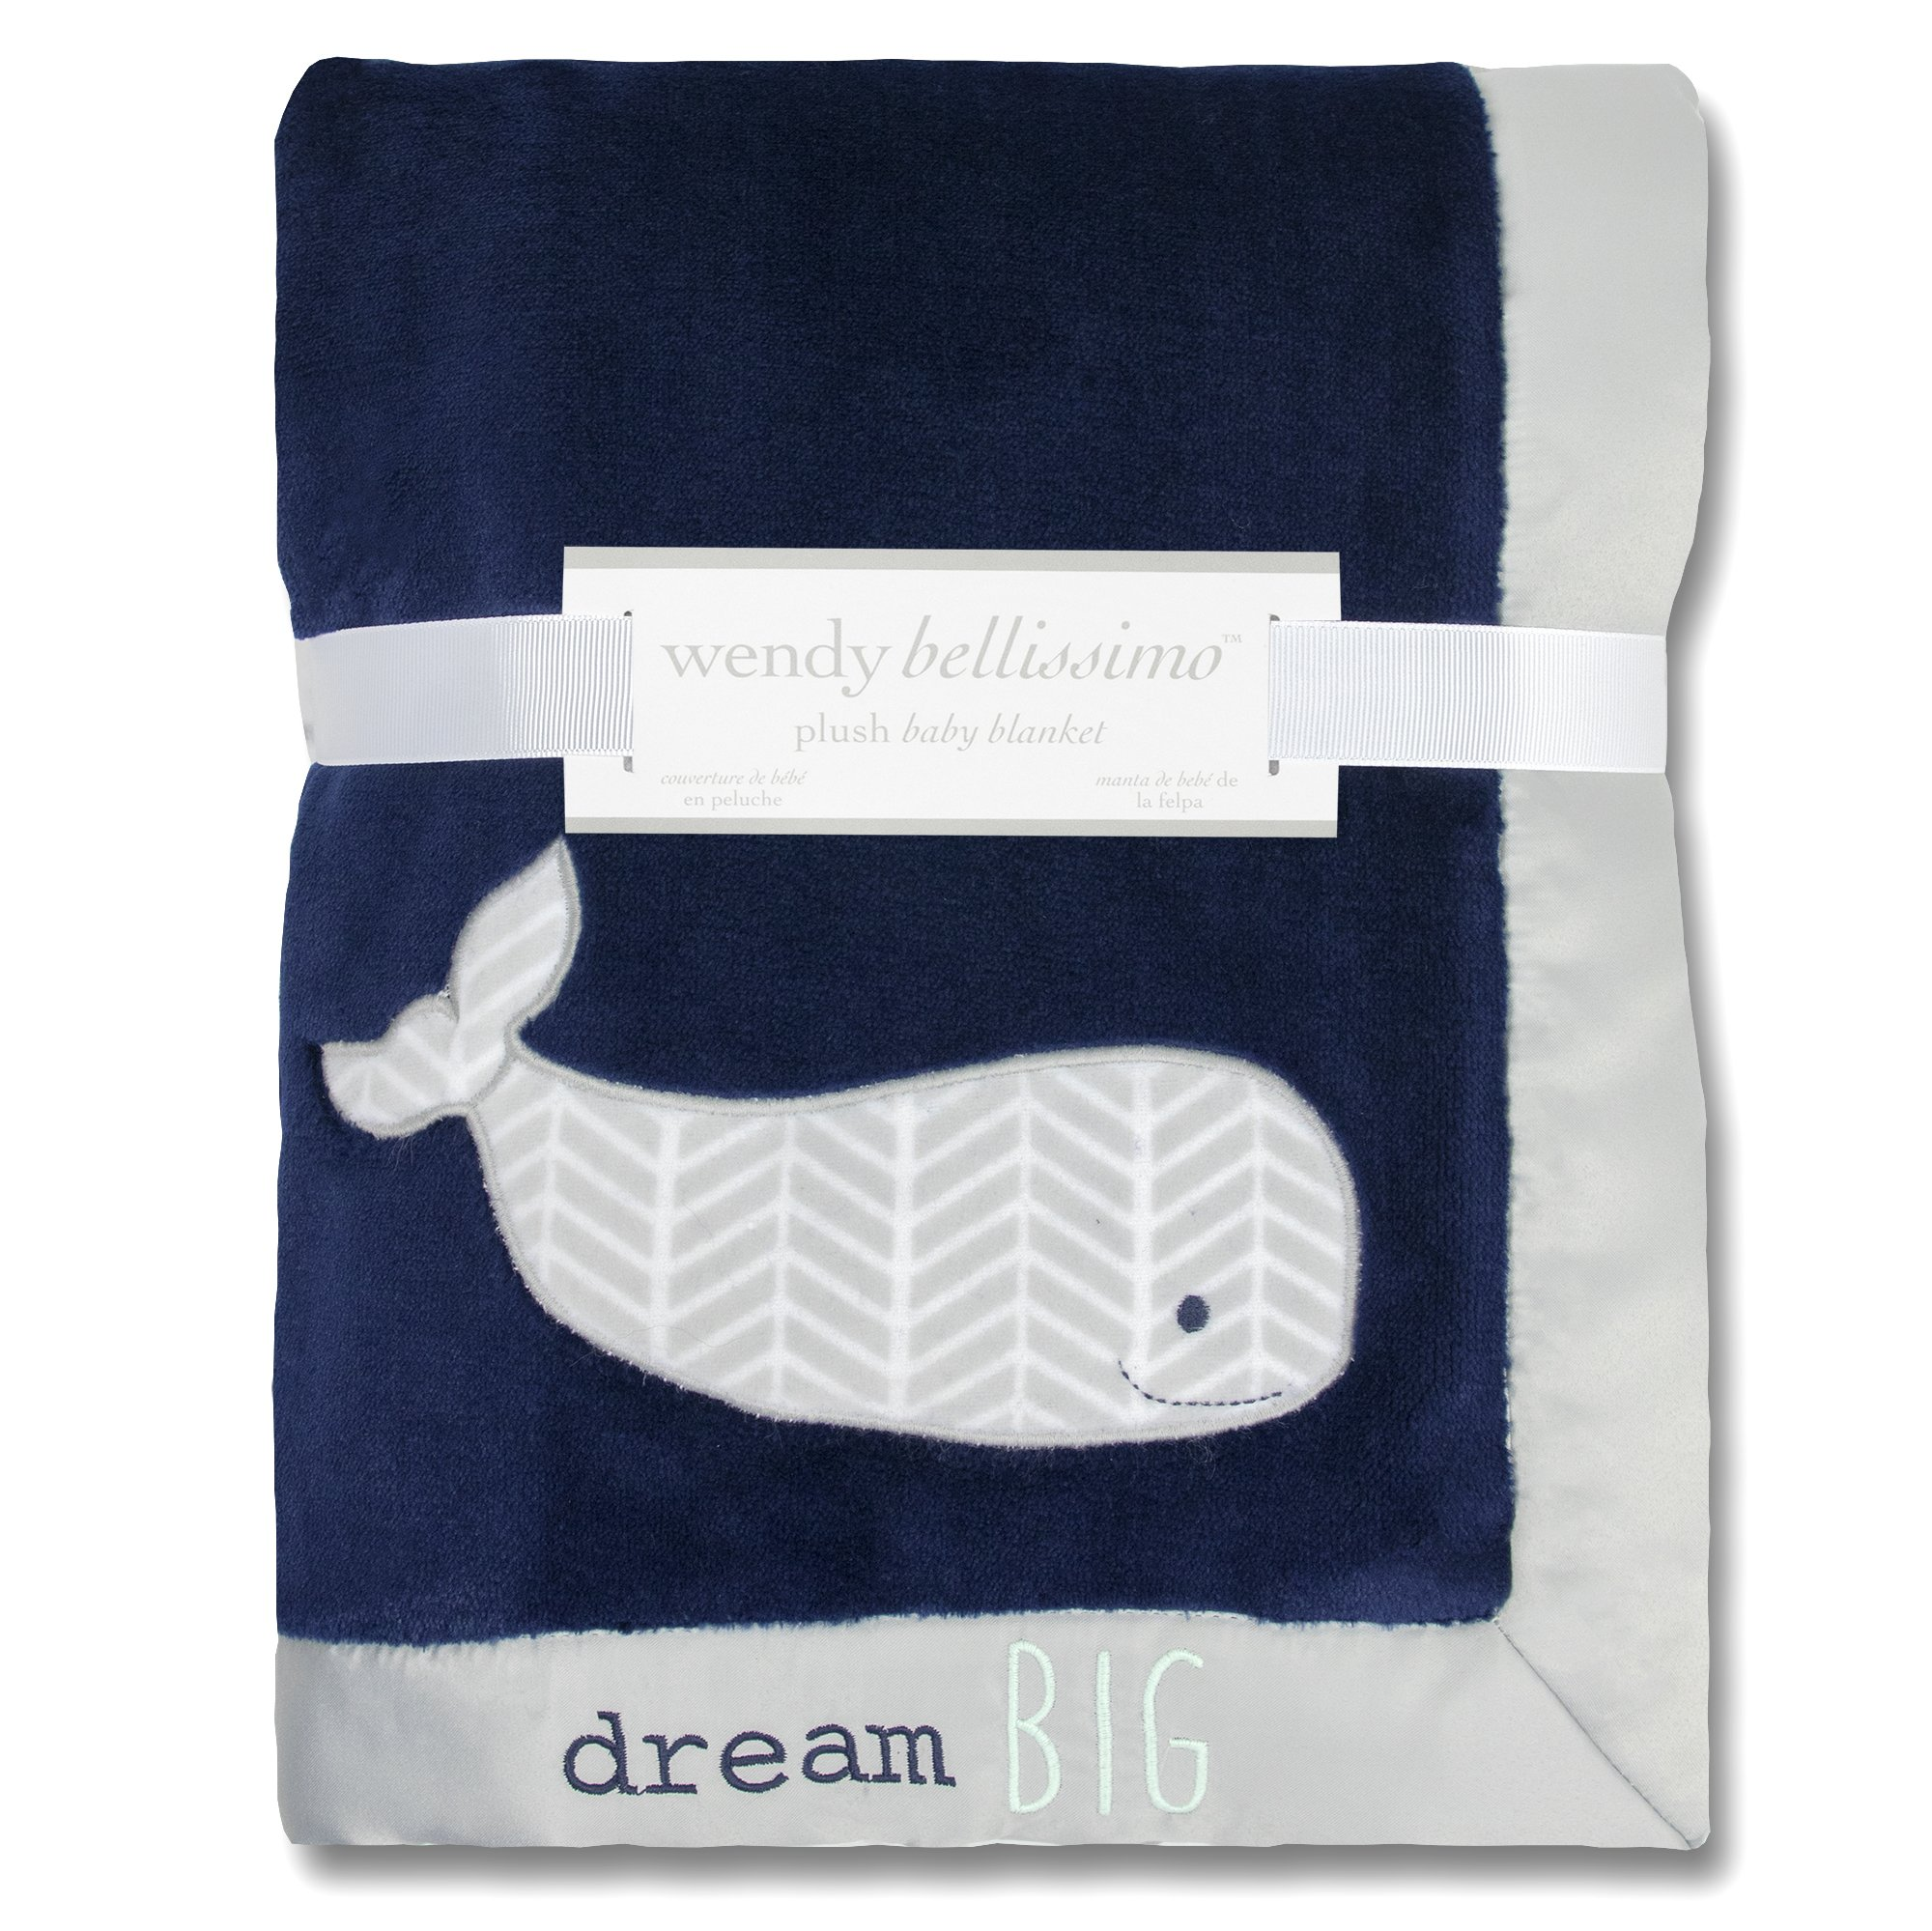 Wendy Bellissimo Super Soft Plush Baby Blanket - Whale Baby Blanket from the Landon Collection in